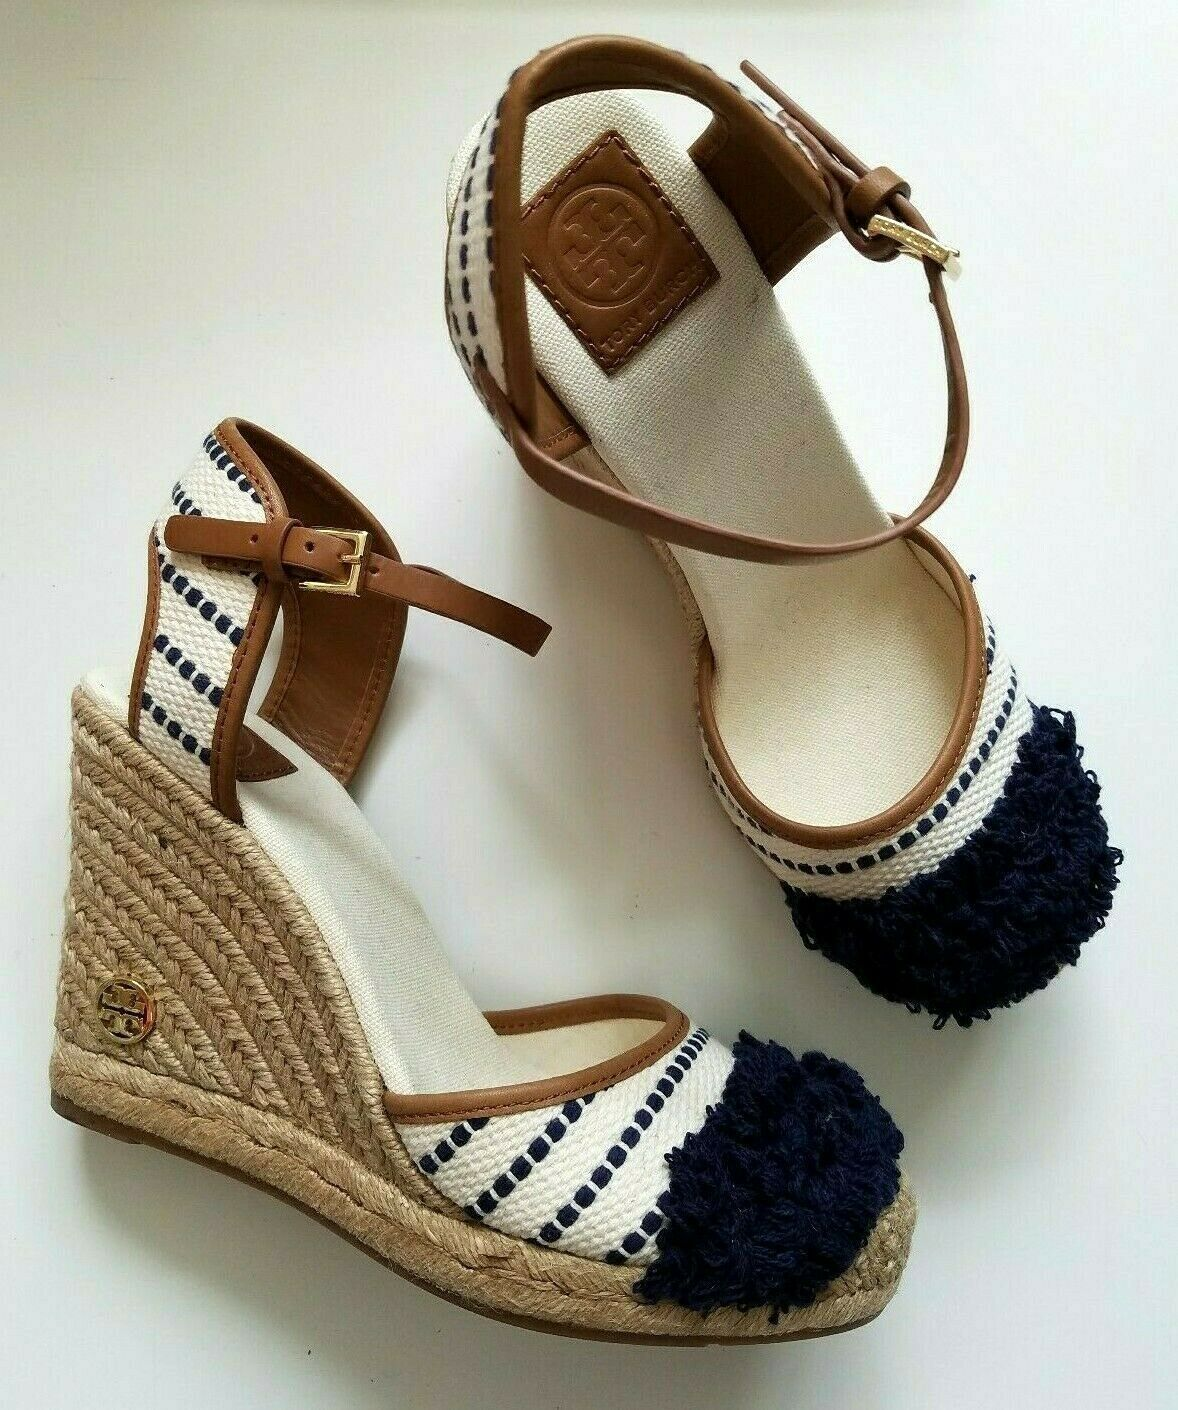 Tory Burch Espadrille Wedges Sandals Navy Cream Wedge Size 10.5 US NEW - $199.00